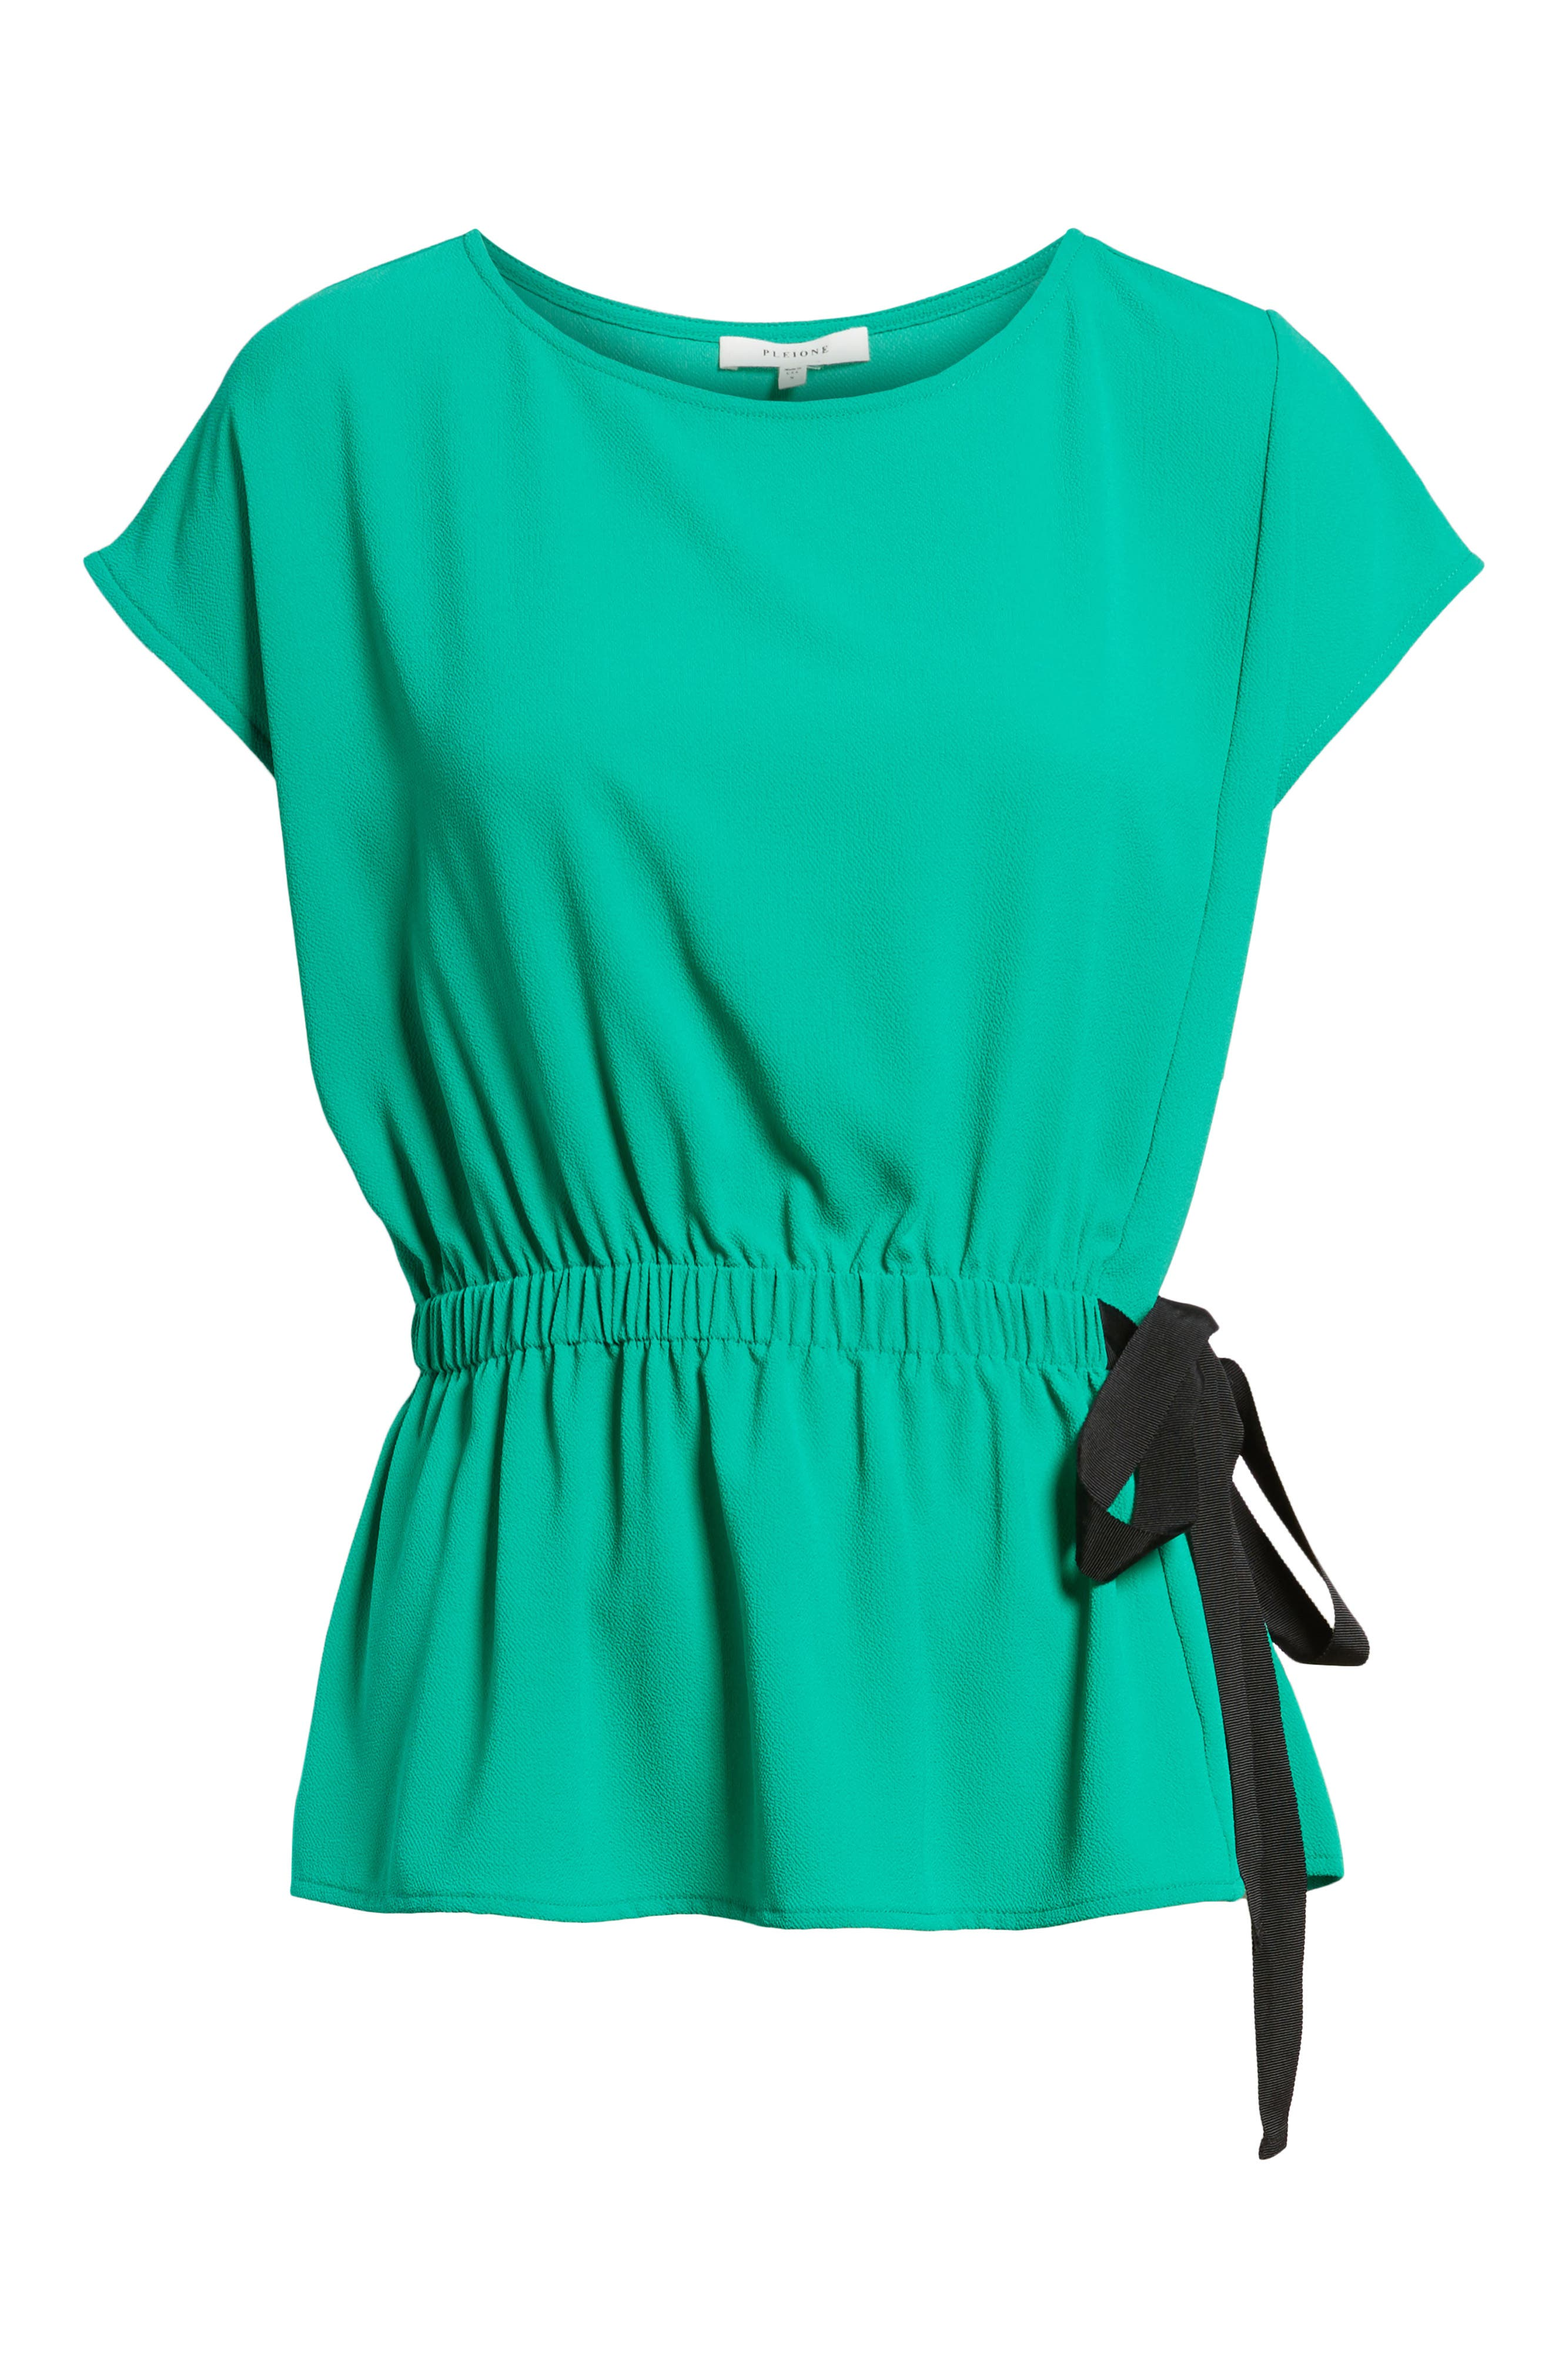 Gathered Waist Side Tie Top,                             Alternate thumbnail 6, color,                             Kelly Green With Black Tie